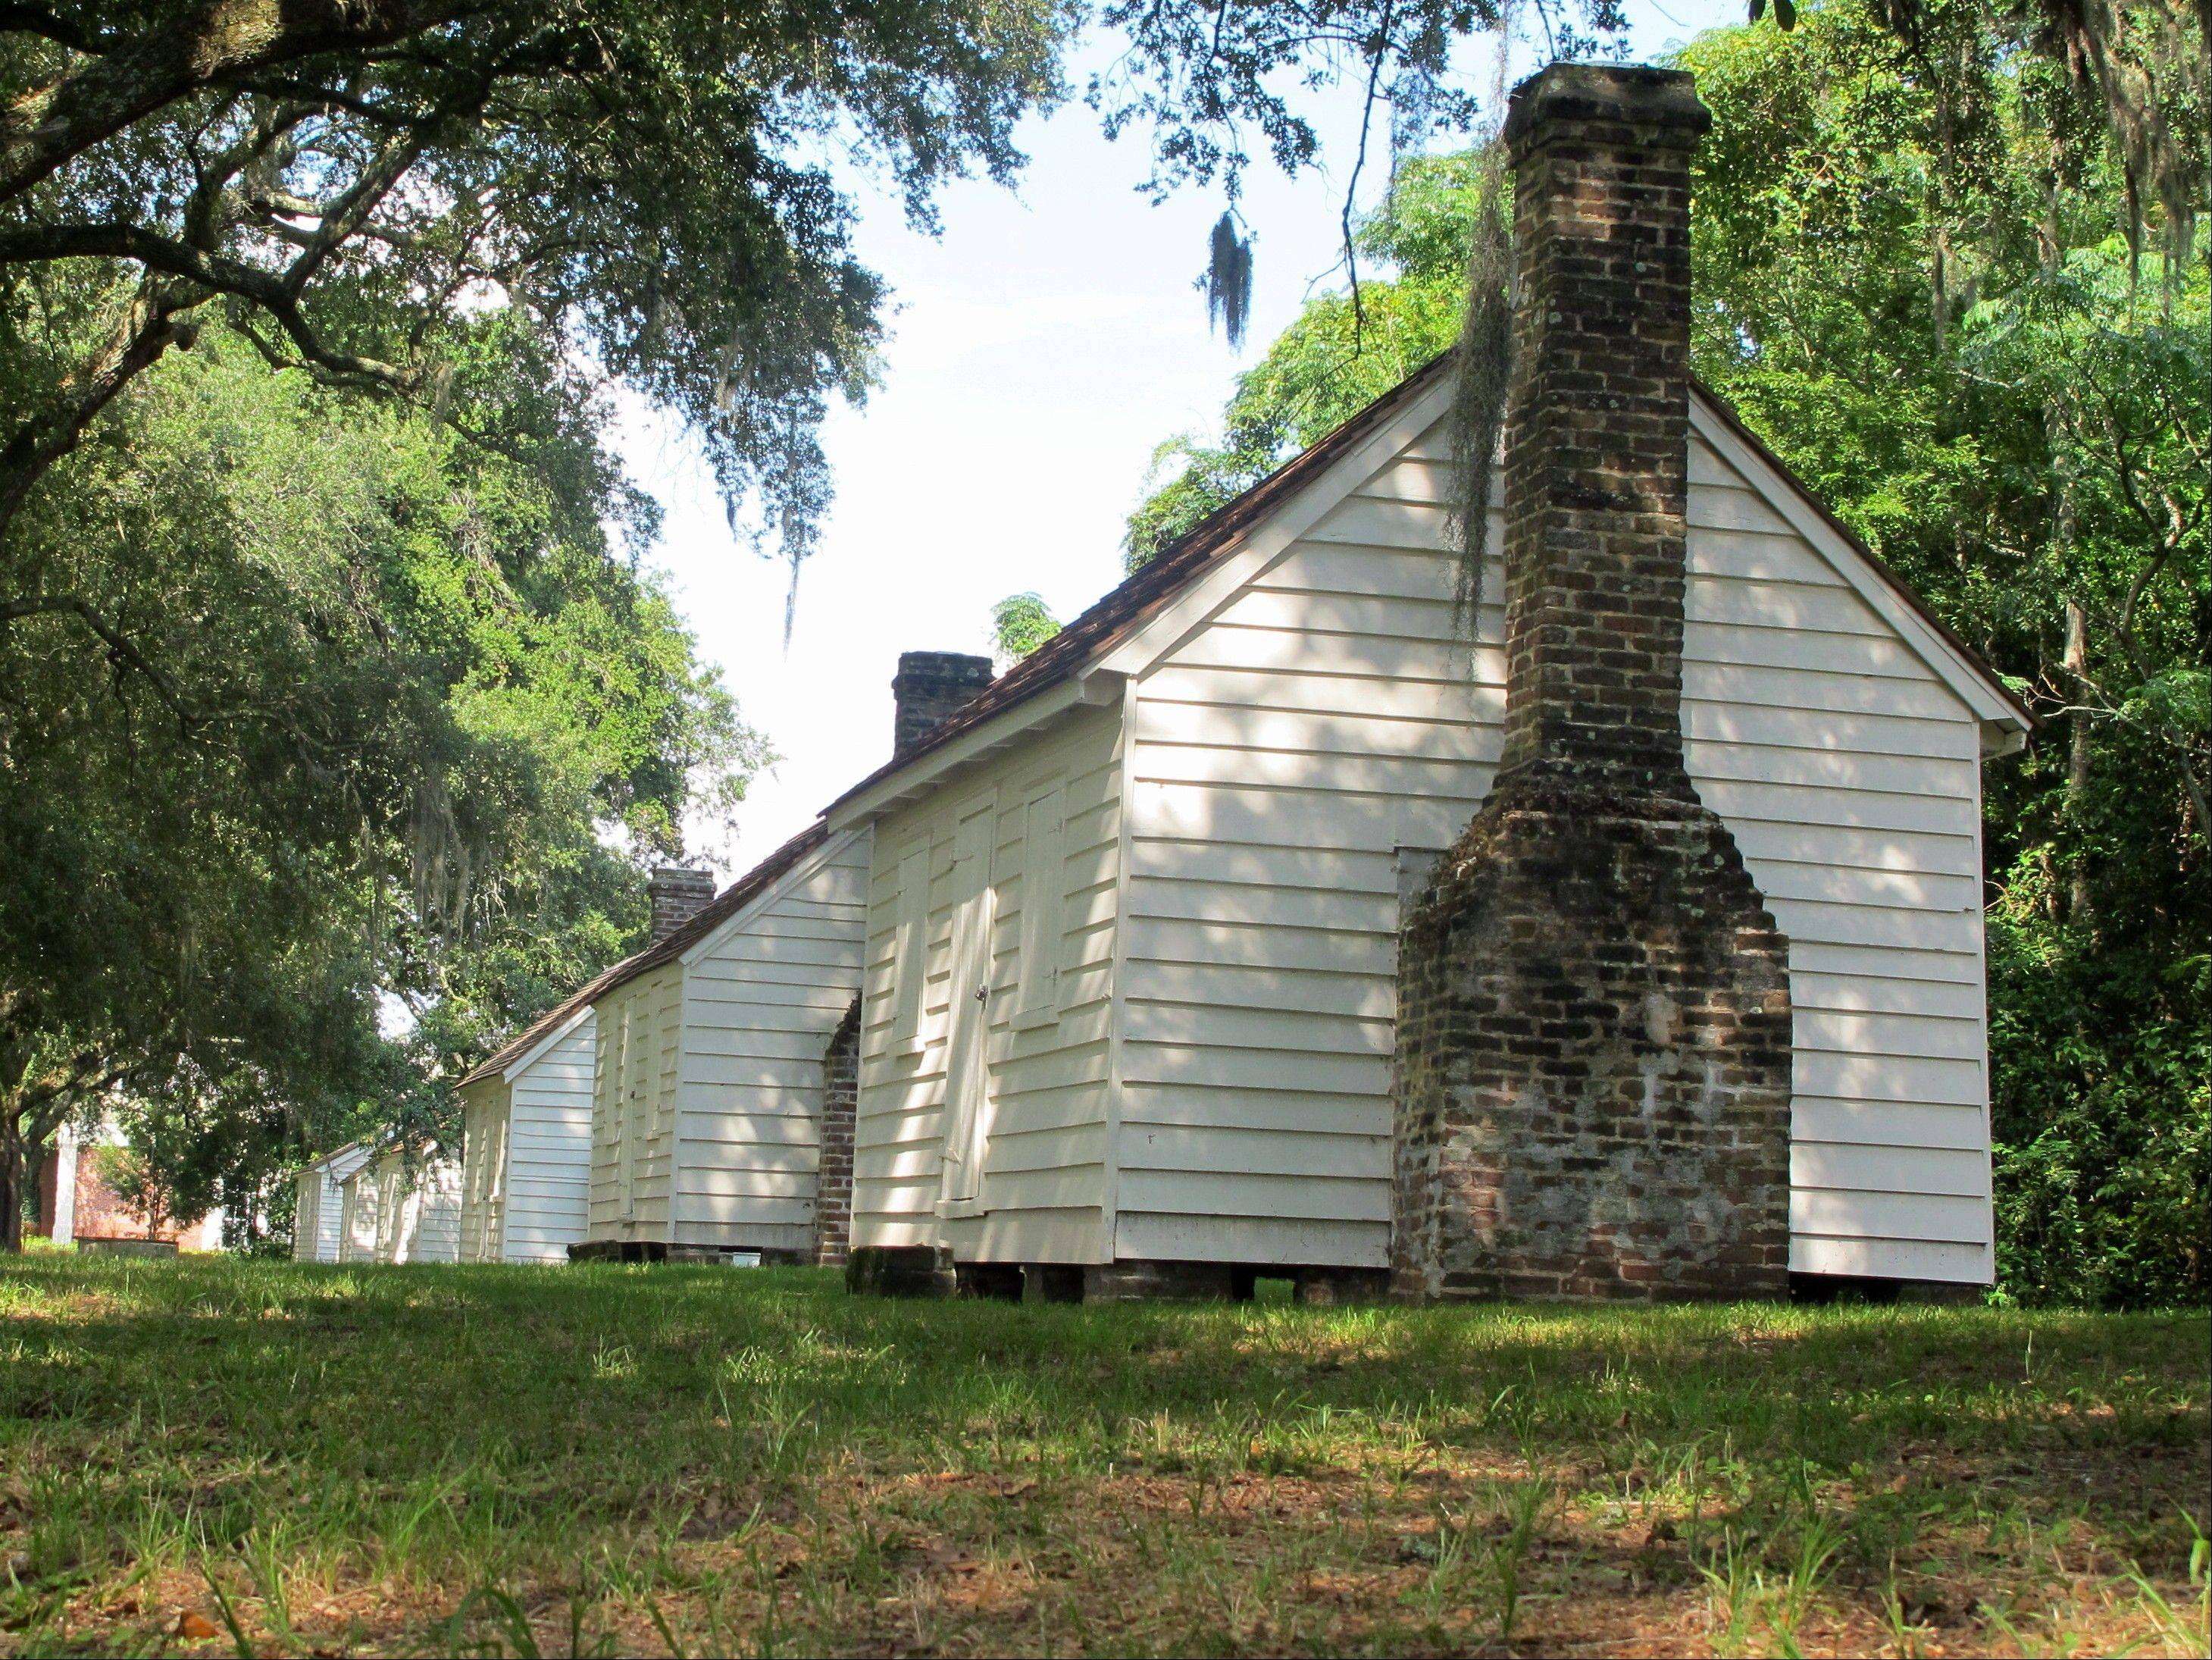 Associated Press A row of slave cabins sit empty at McLeod Plantation in Charleston, S.C. Joe McGill, who works with the National Trust For Historic Preservation, has slept in old slave dwellings in a dozen states during the past three years as part of the Slave Dwelling Project to draw attention to the need to preserve the structures.